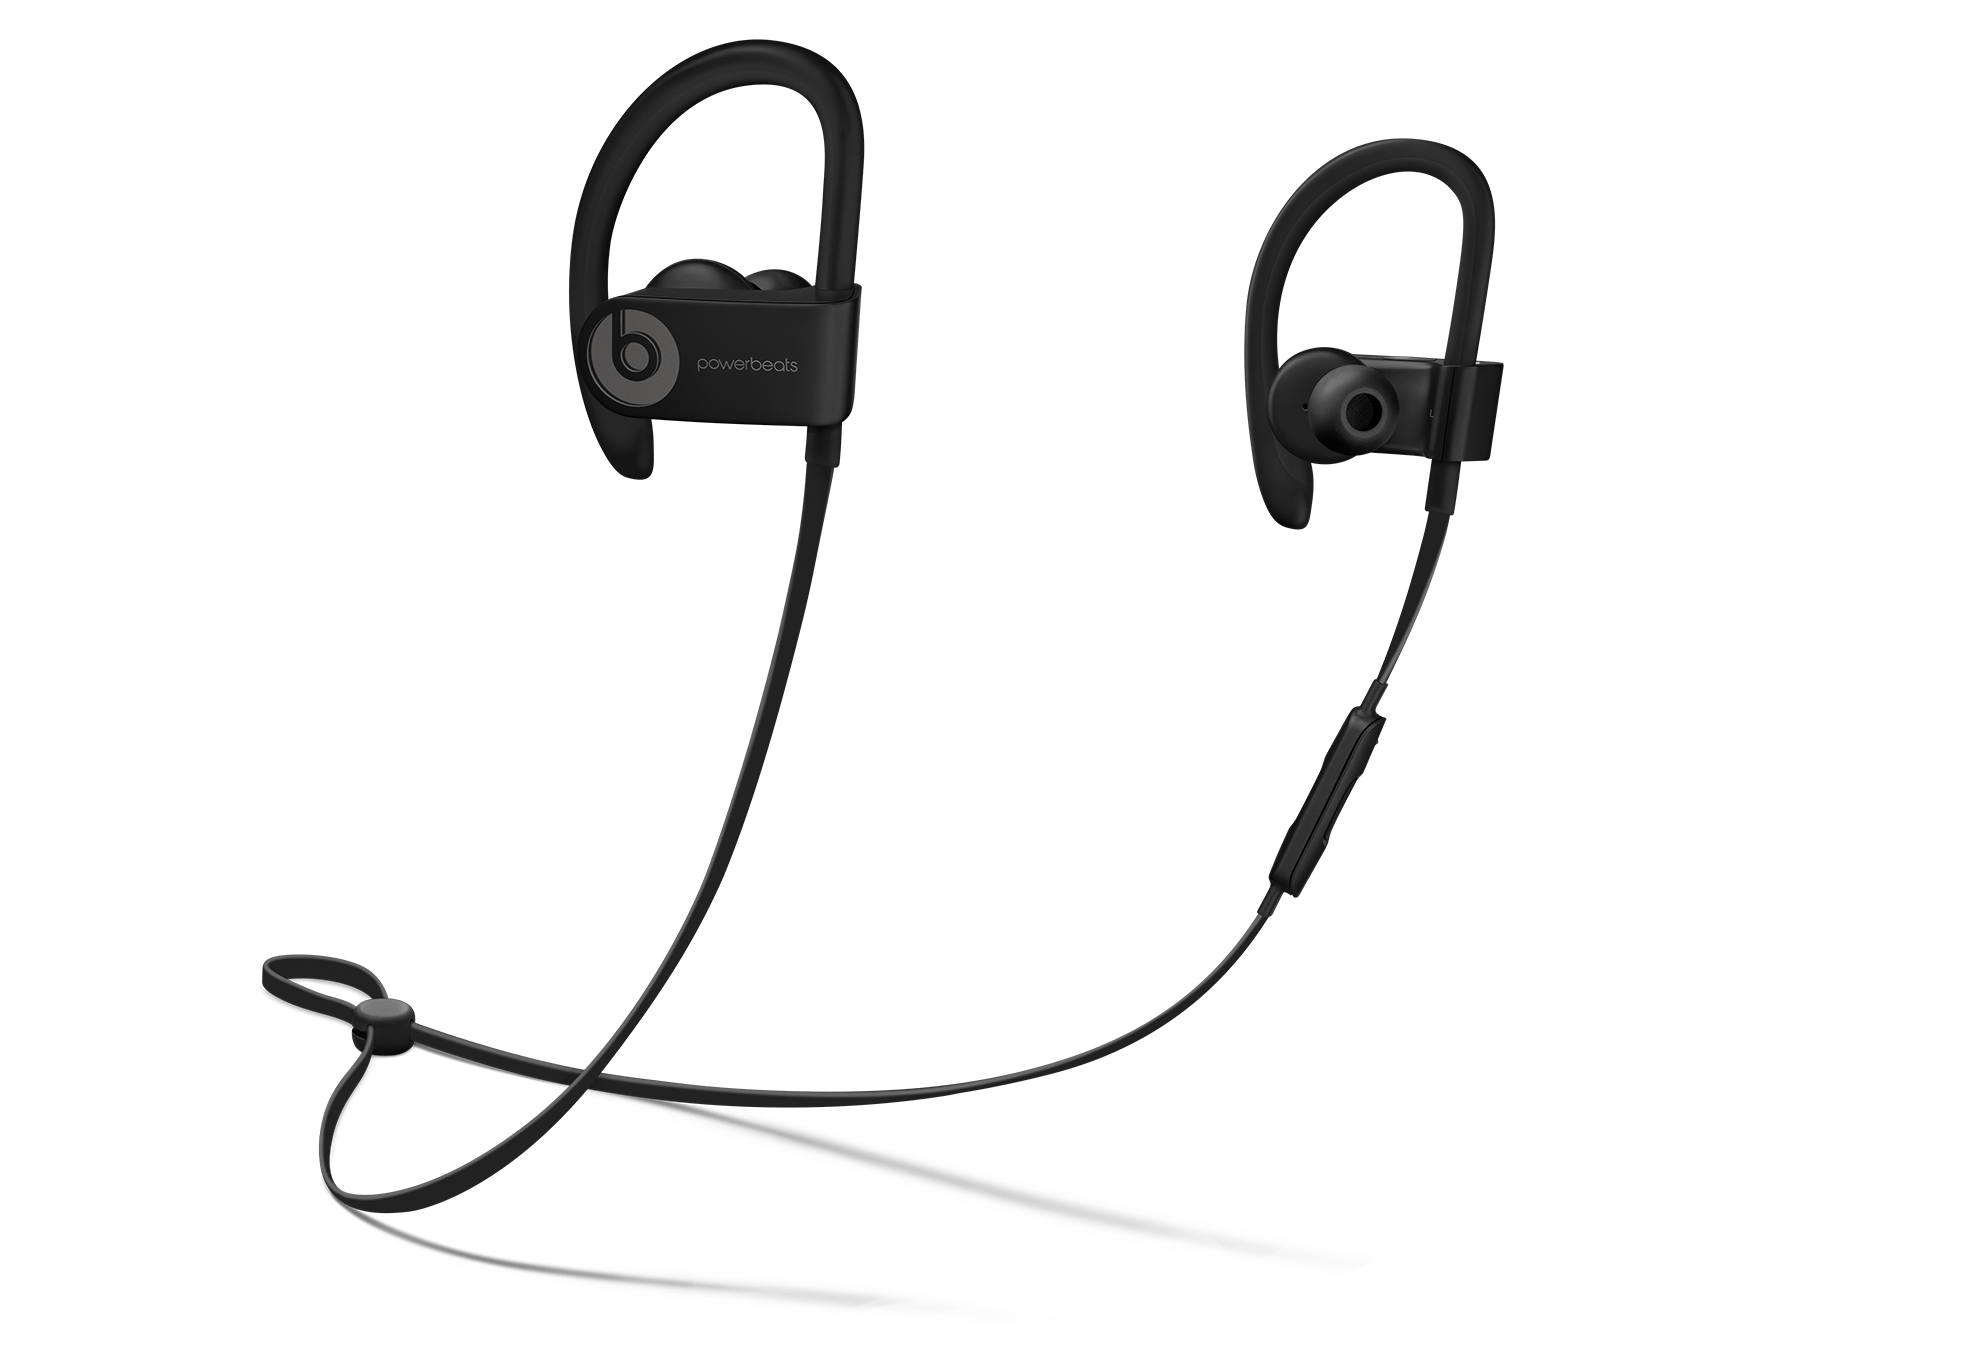 Bluetooth headphones wireless jll - Beats Powerbeats3 - earphones with mic Overview